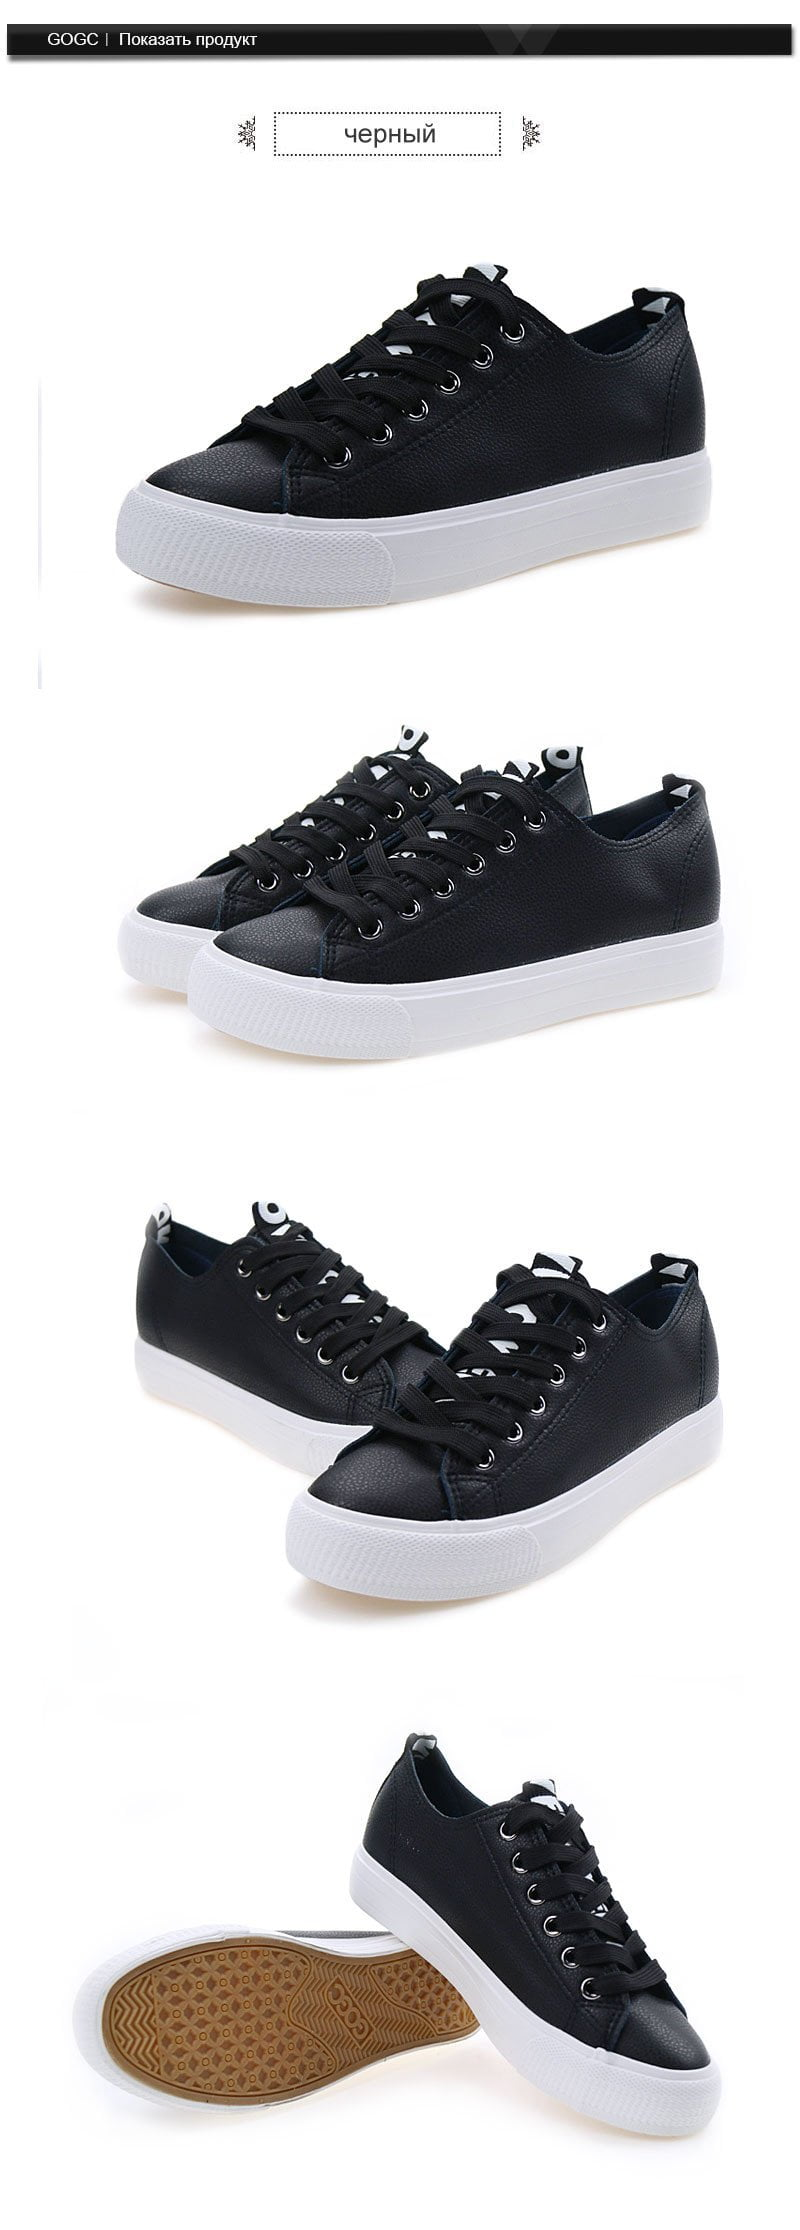 White Shoes for Women Breathable Leather Casual Shoes Women Platform Shoes Women Footwear Female-SHOES-SheSimplyShops